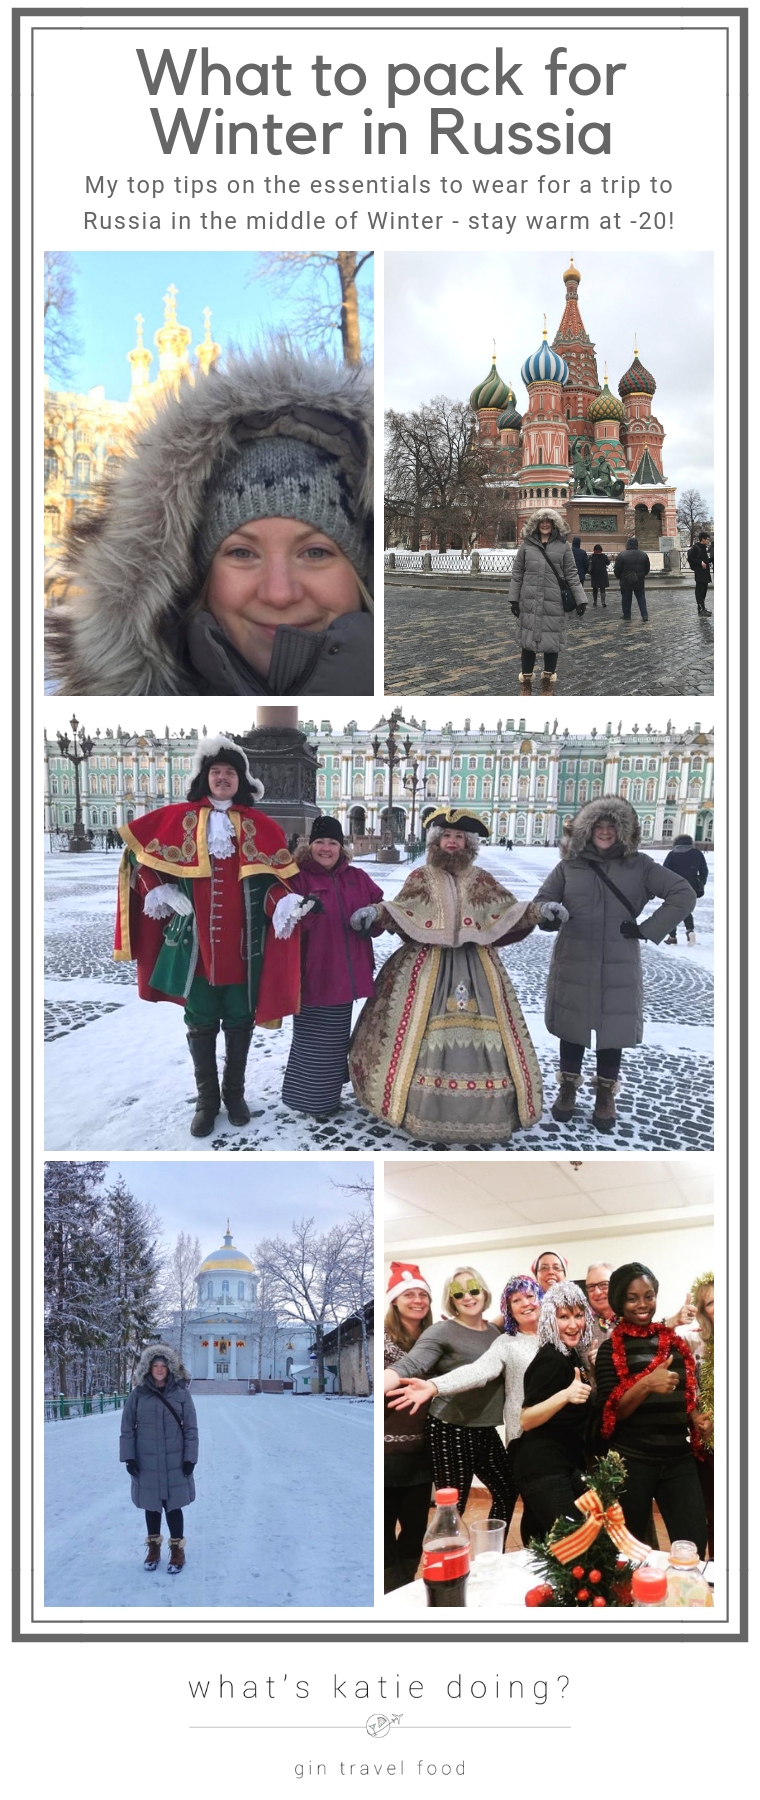 13c857e79619 What to pack for Winter in Russia - all my top tips to stay warm at